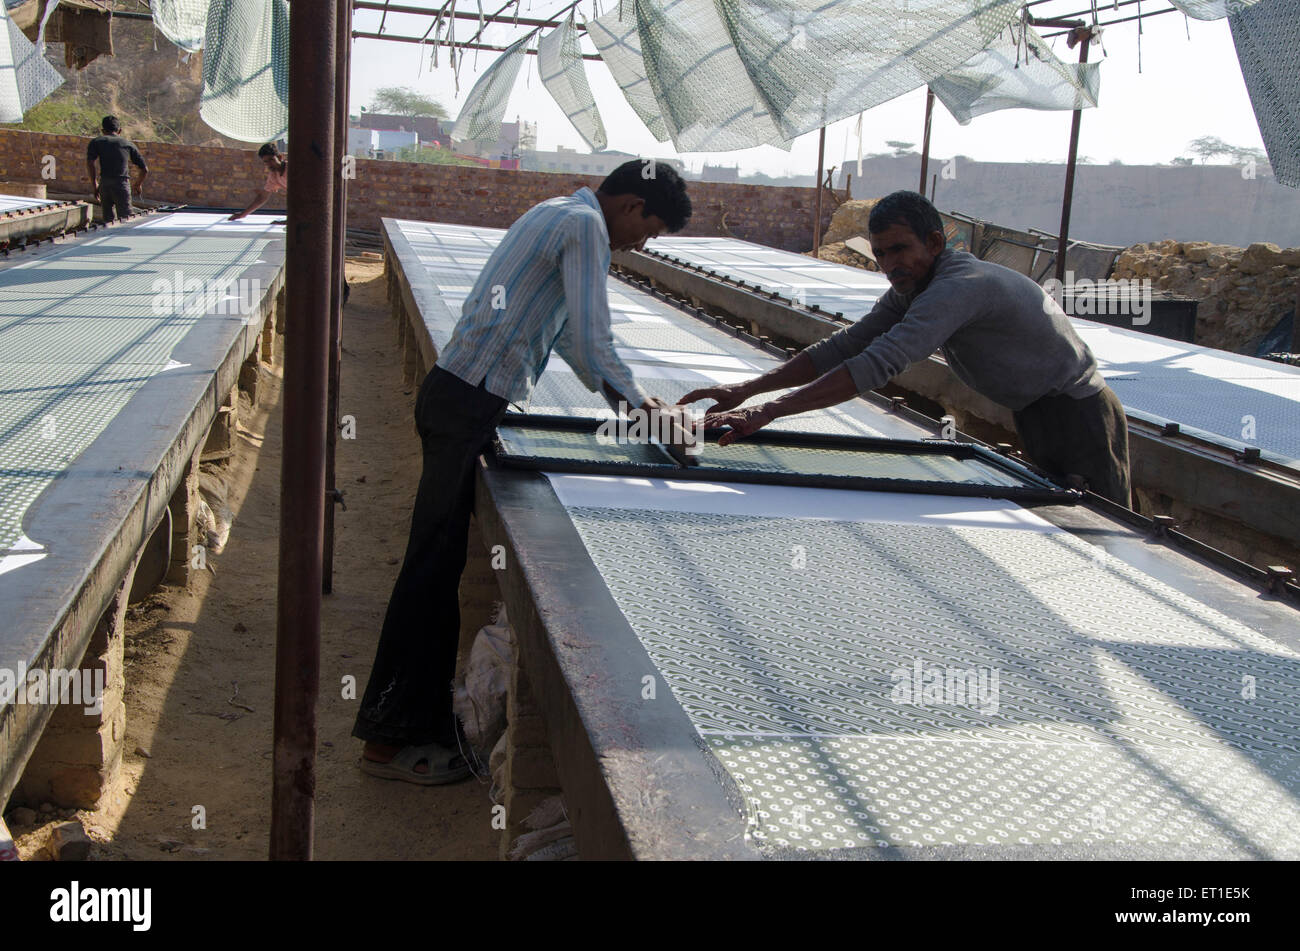 workers engaged in cloth printing work Bikaner Rajasthan India Asia - Stock Image